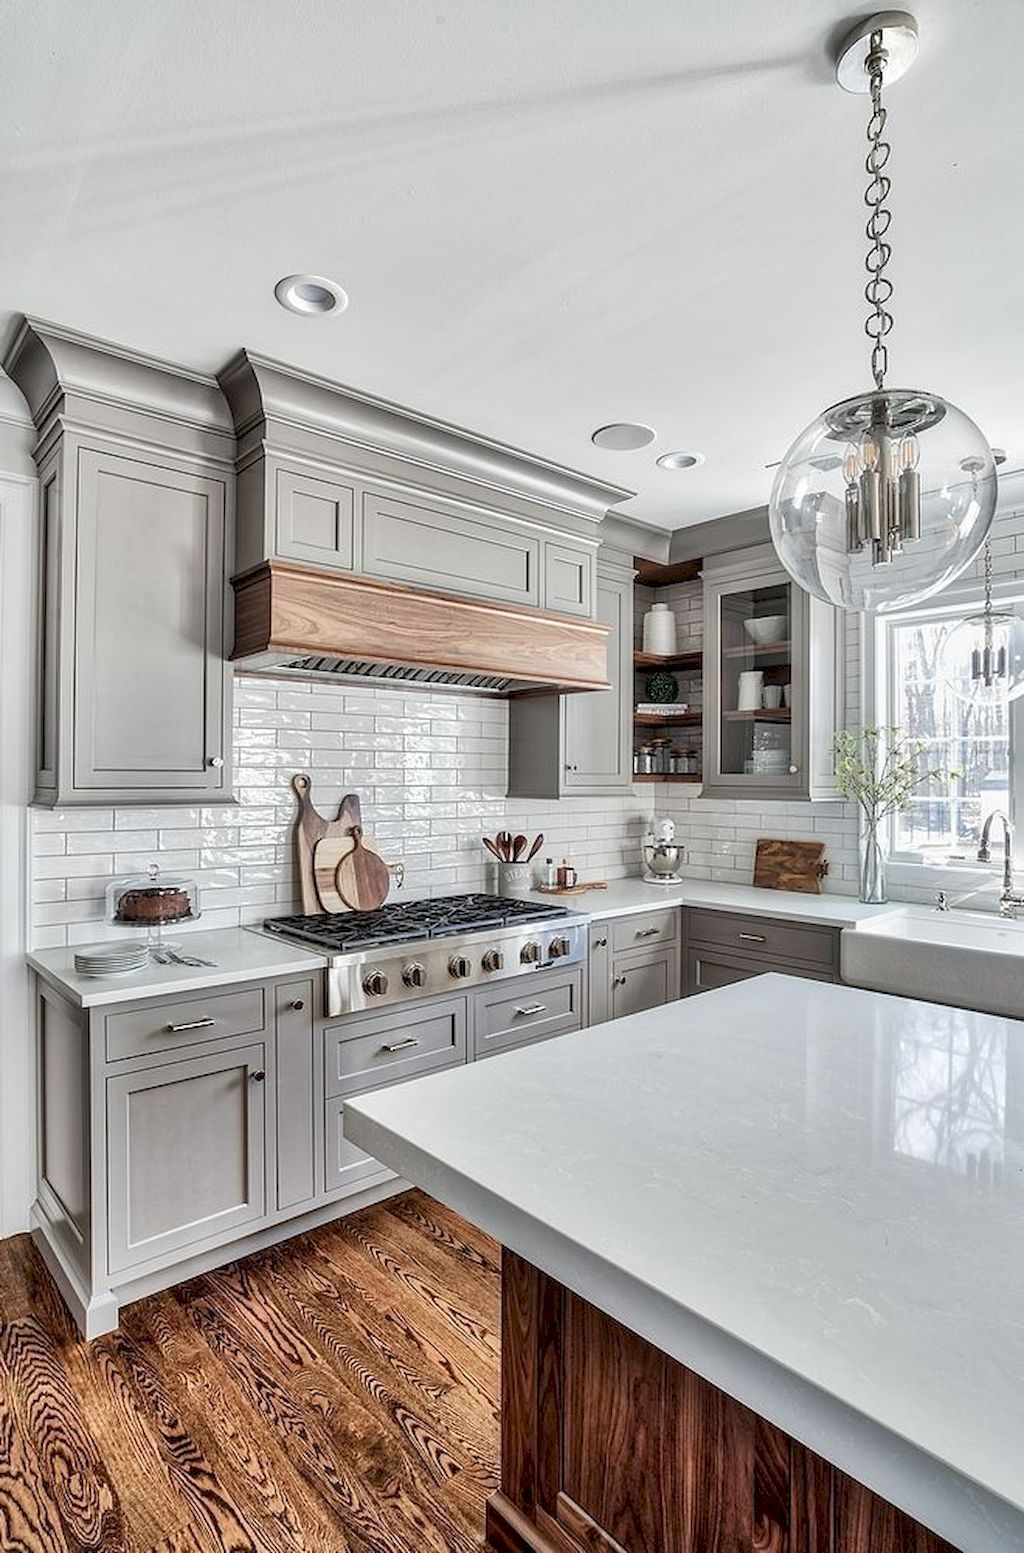 11 Simple Home Decoration Ideas For Your Kitchen Grey Kitchen